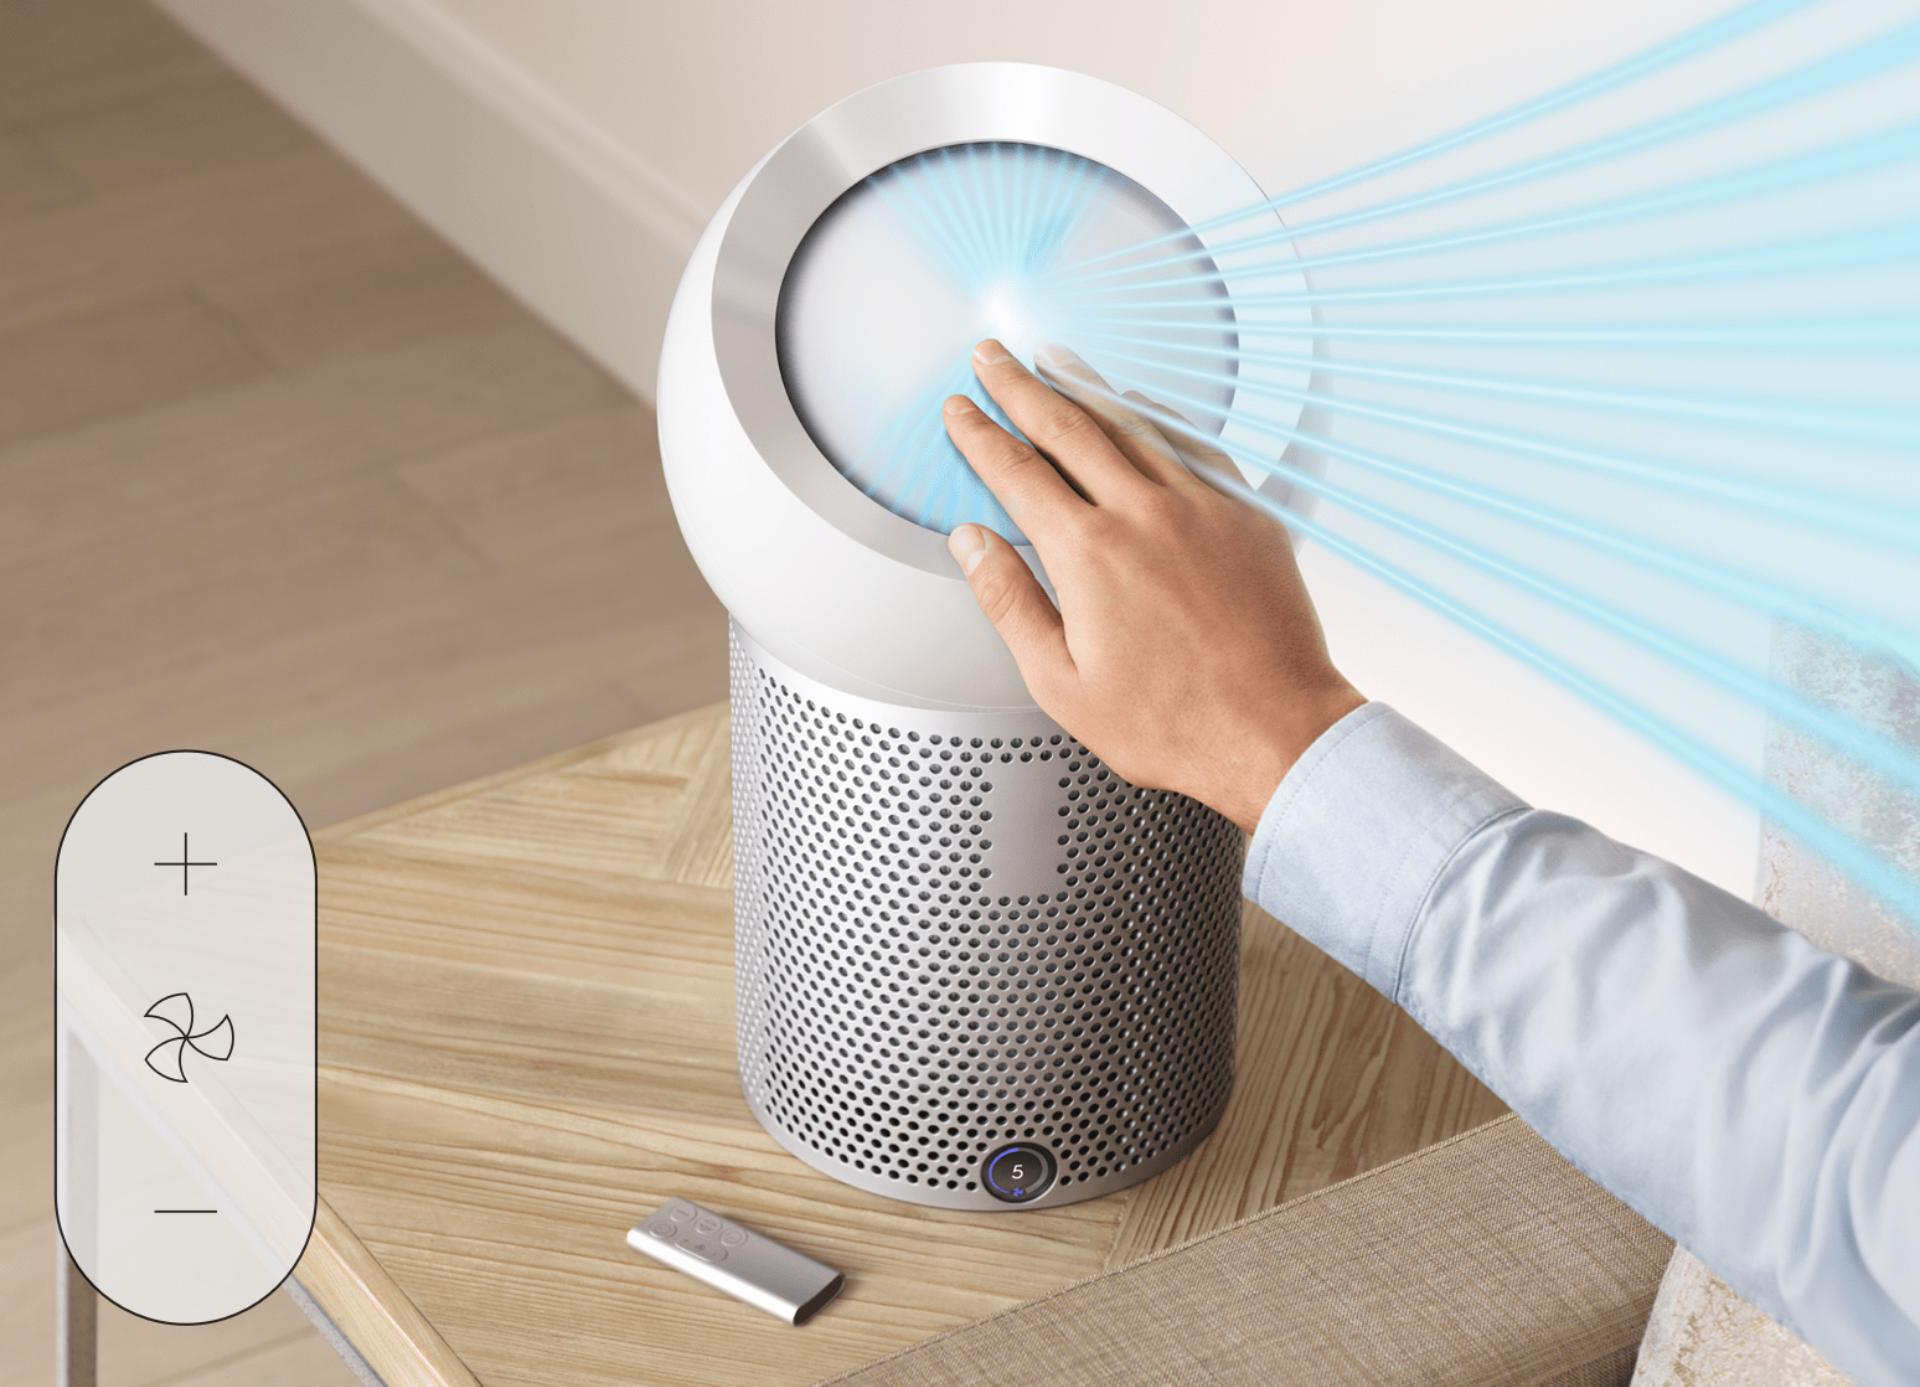 Hand reaching out to refocus airflow of Dyson Pure Cool Me™